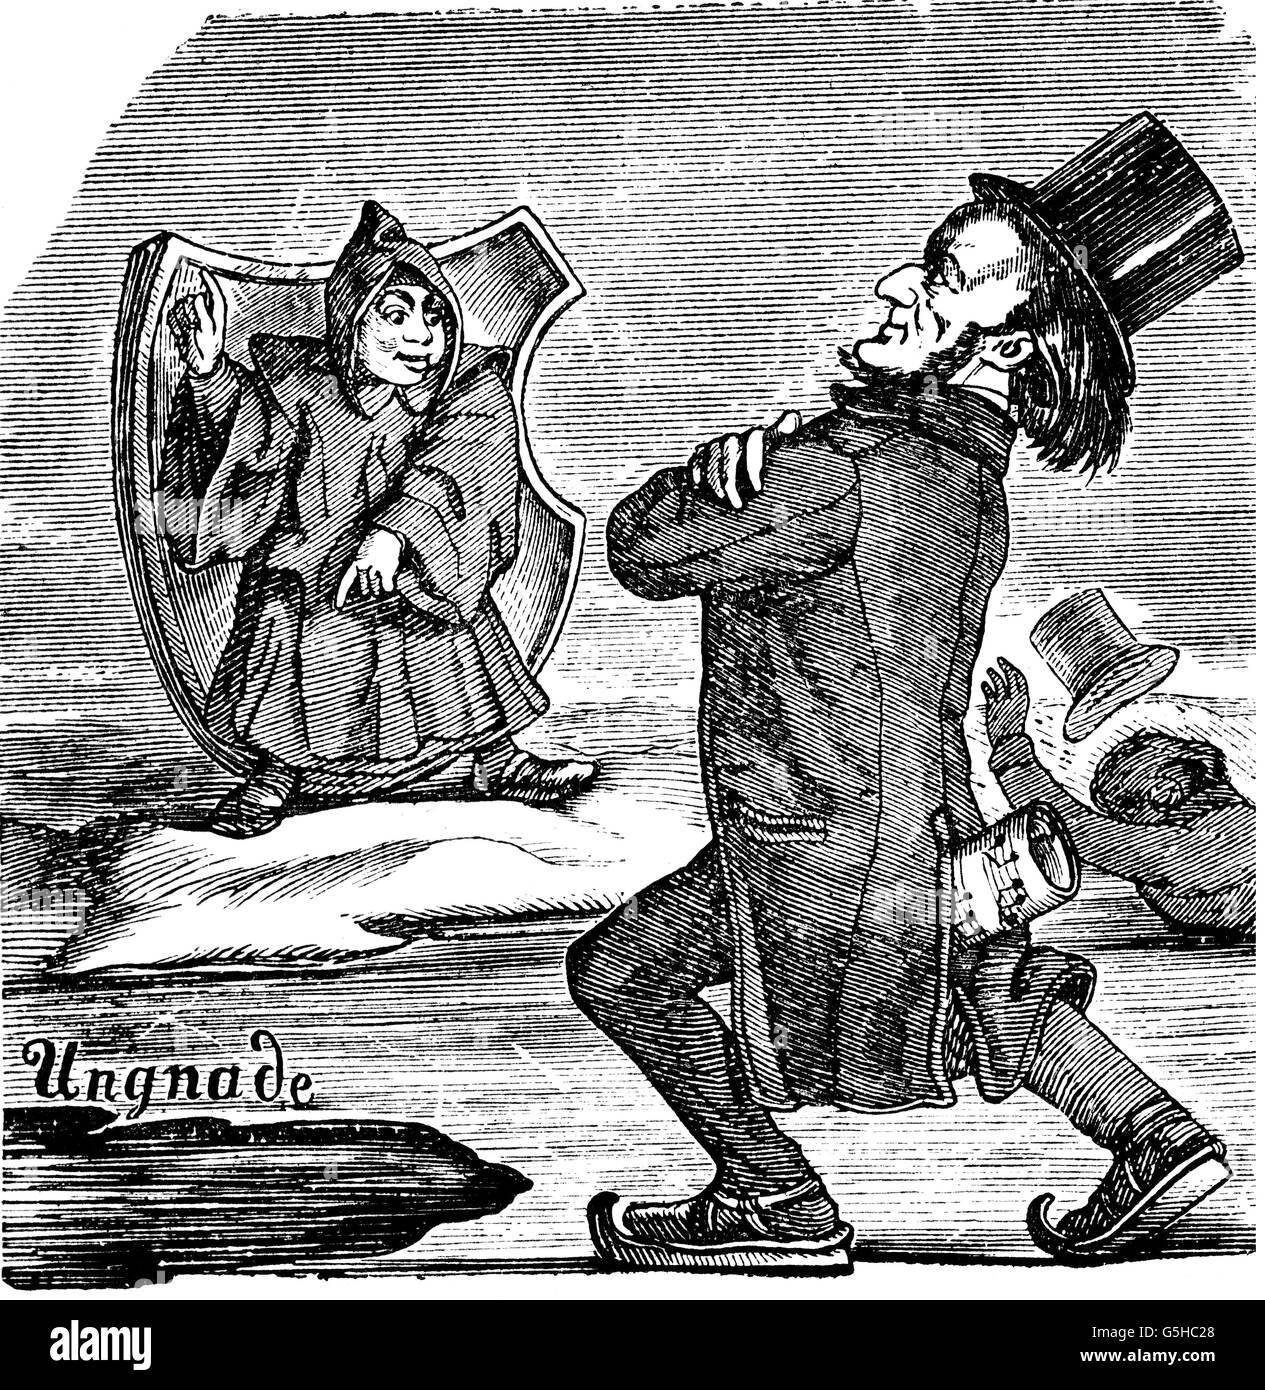 Wagner, Richard, 22.5.1813 - 13.2.1883, German musician (composer), full length, caricature 'Man on the ice', - Stock Image